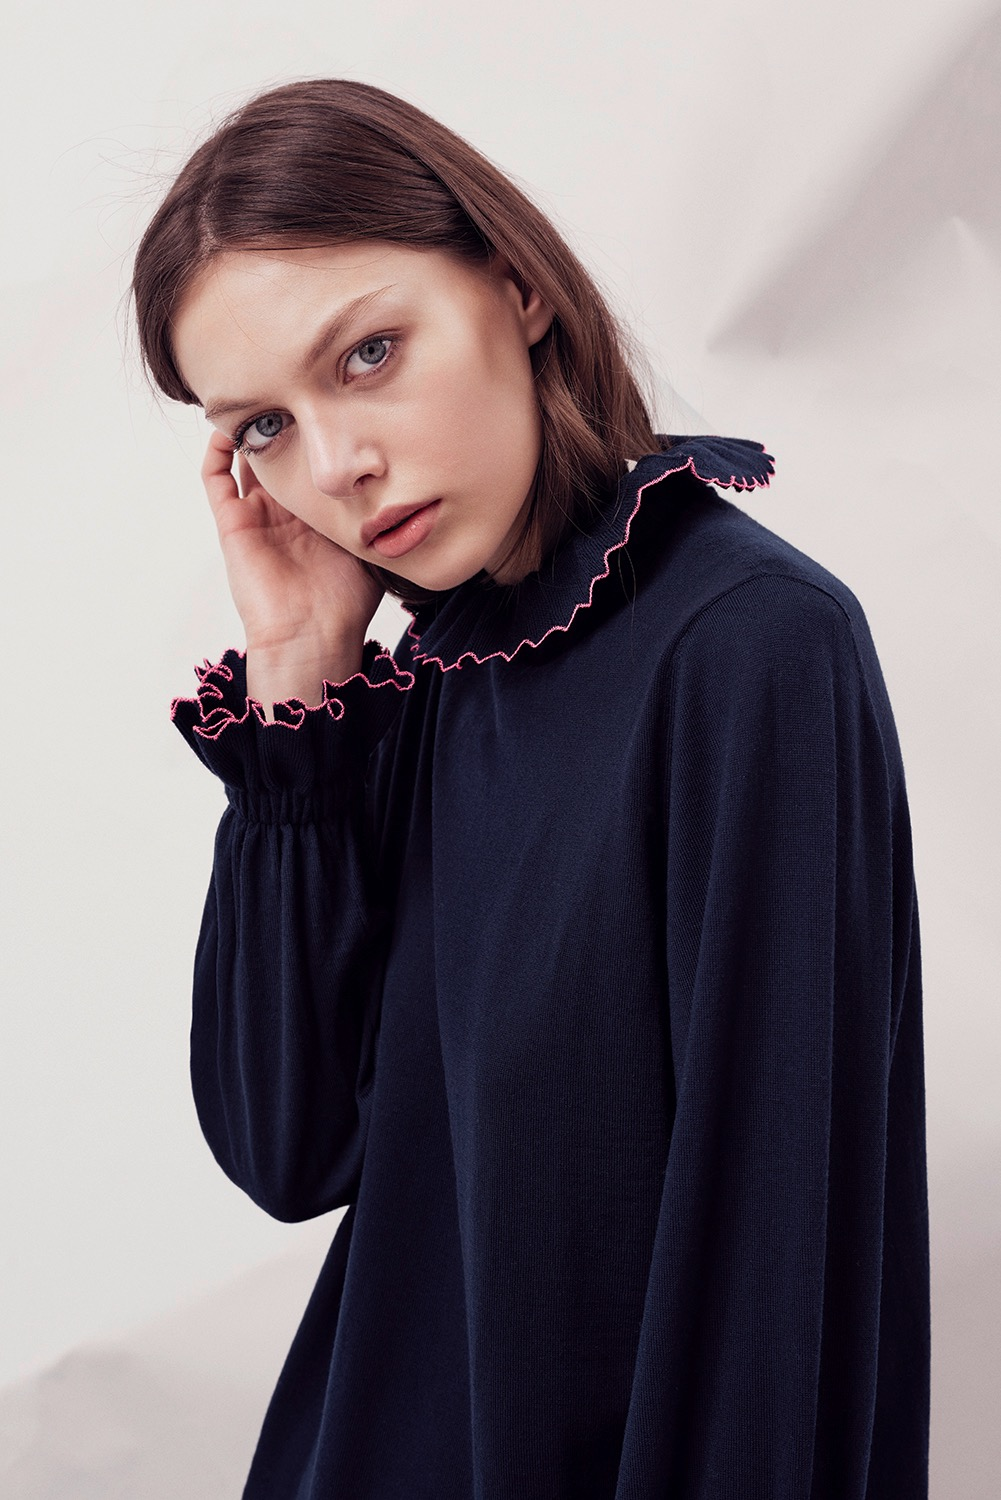 Alex Gore Browne's collection focuses on cocktail sweaters.